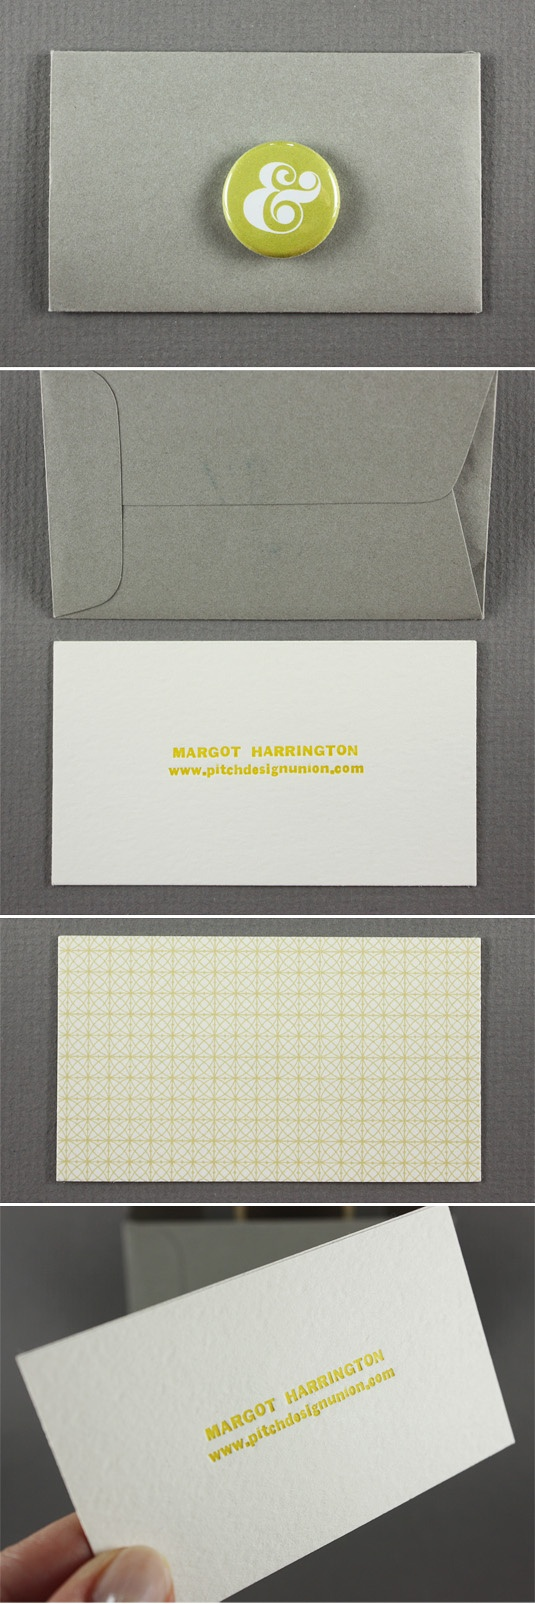 17 Best images about Business Card Envelope